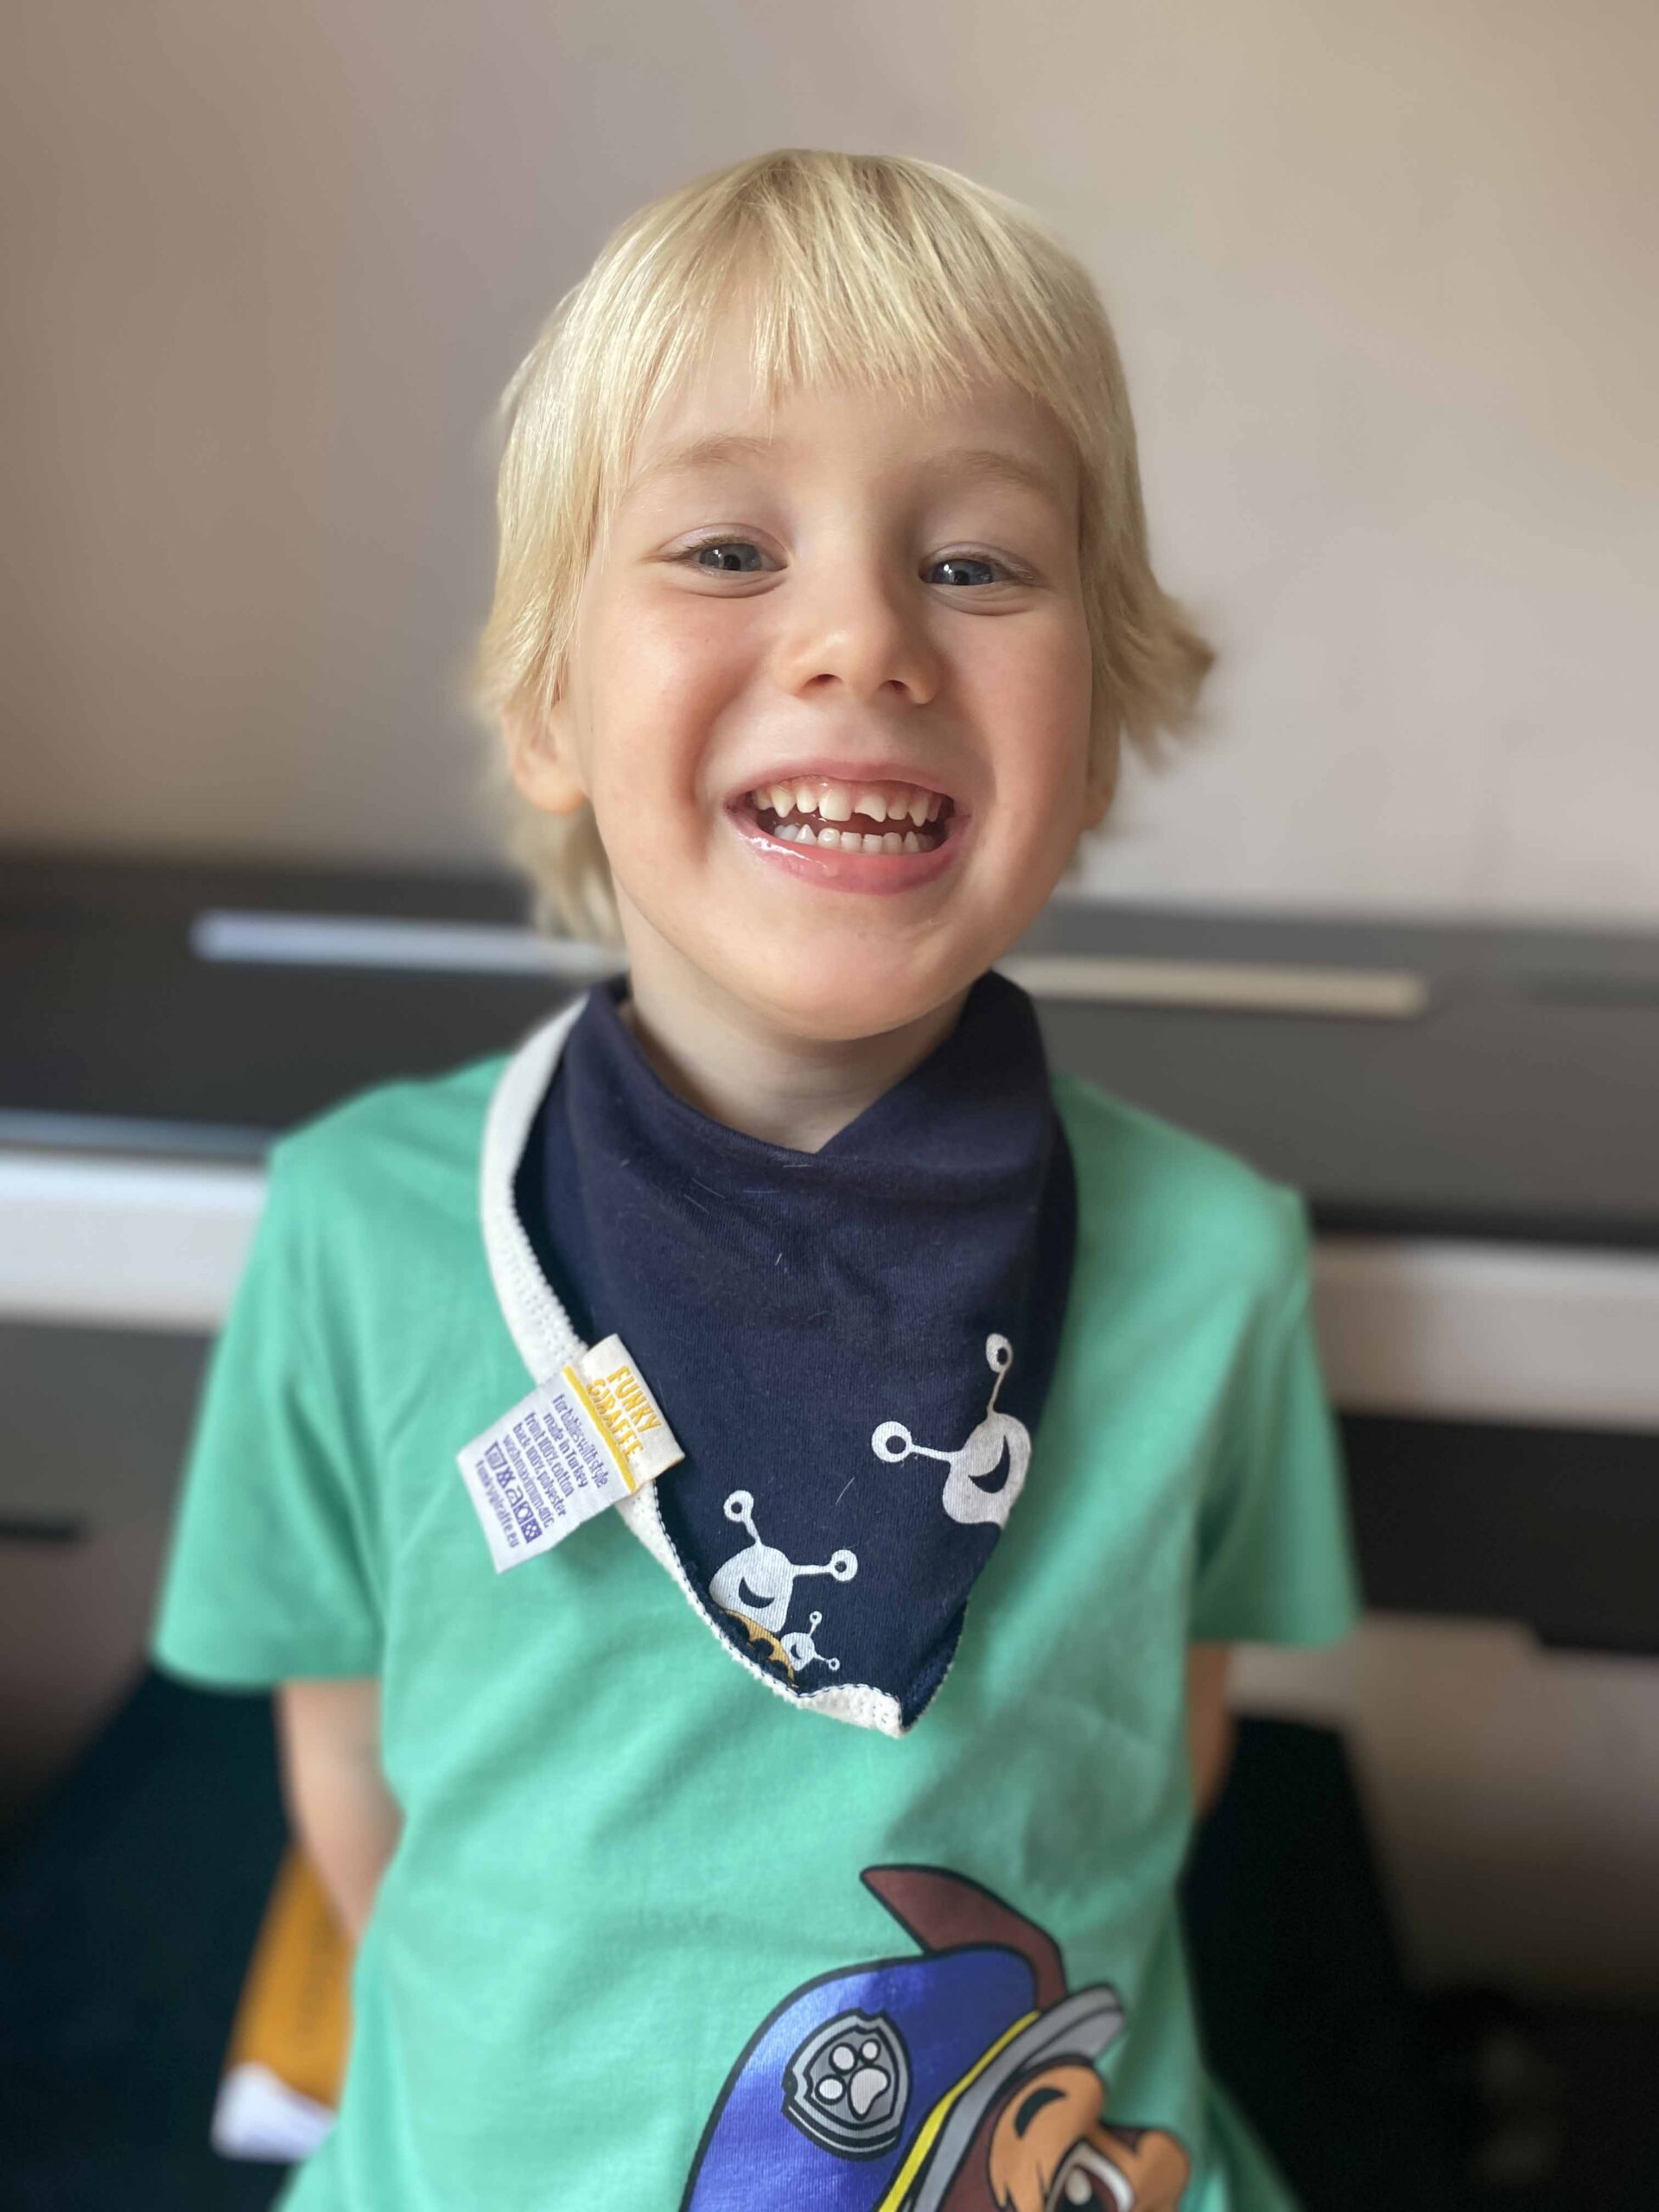 How to Get Your 3 Year Old to Brush Their Teeth – Laura's Lovely Blog ♥